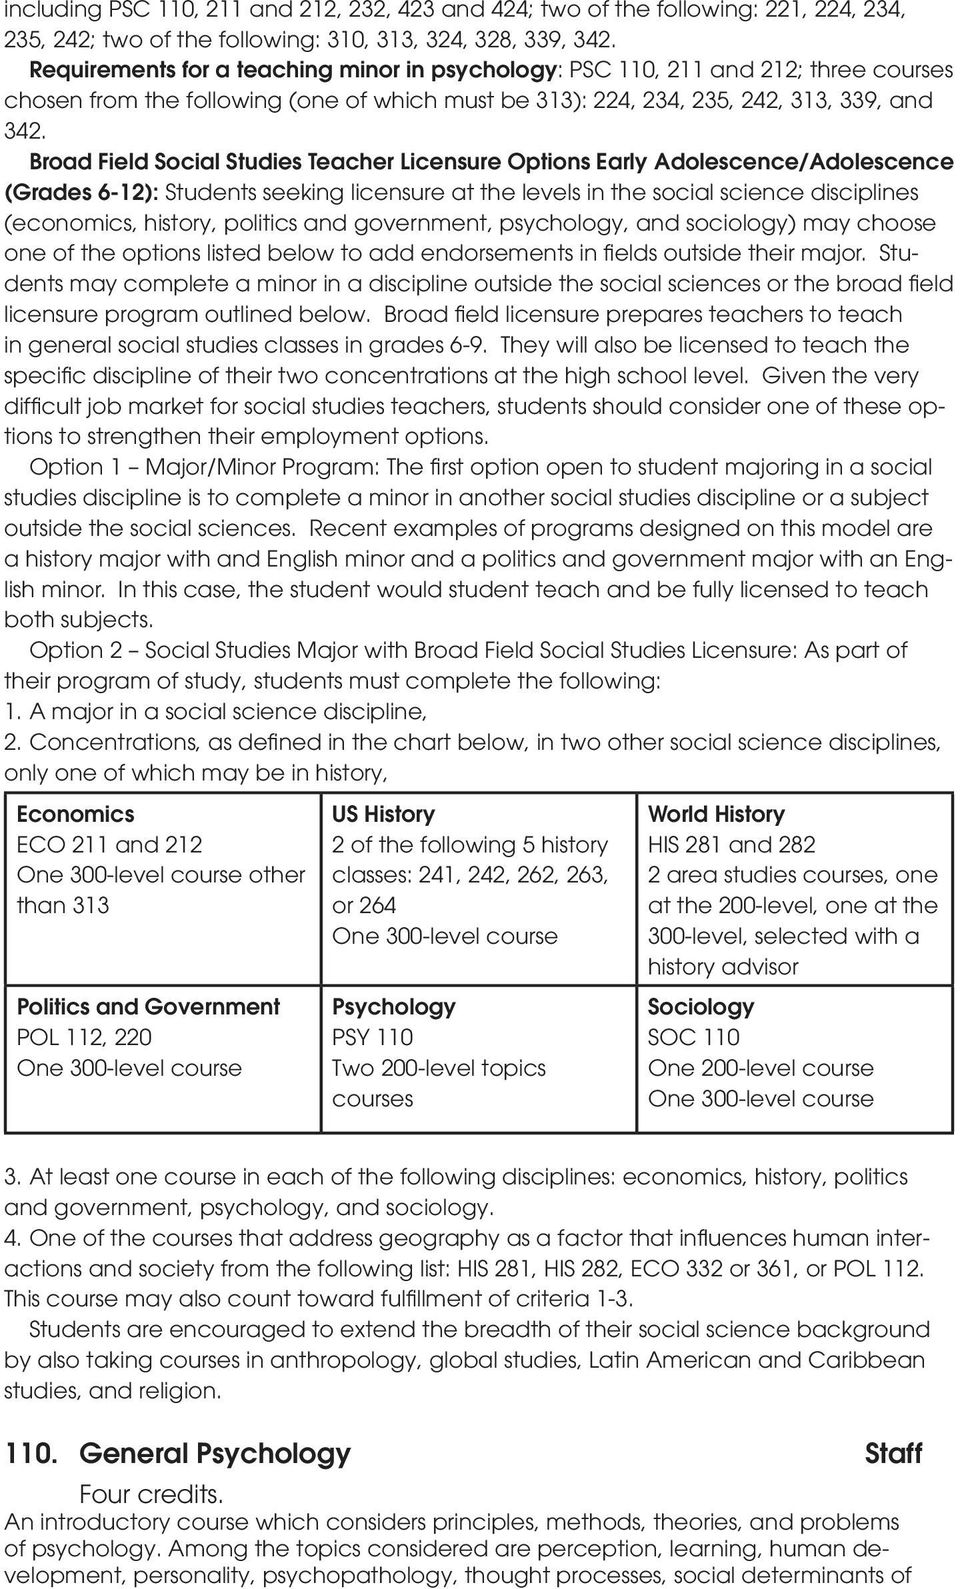 Broad Field Social Studies Teacher Licensure Options Early Adolescence/Adolescence (Grades 6-12): Students seeking licensure at the levels in the social science disciplines (economics, history,